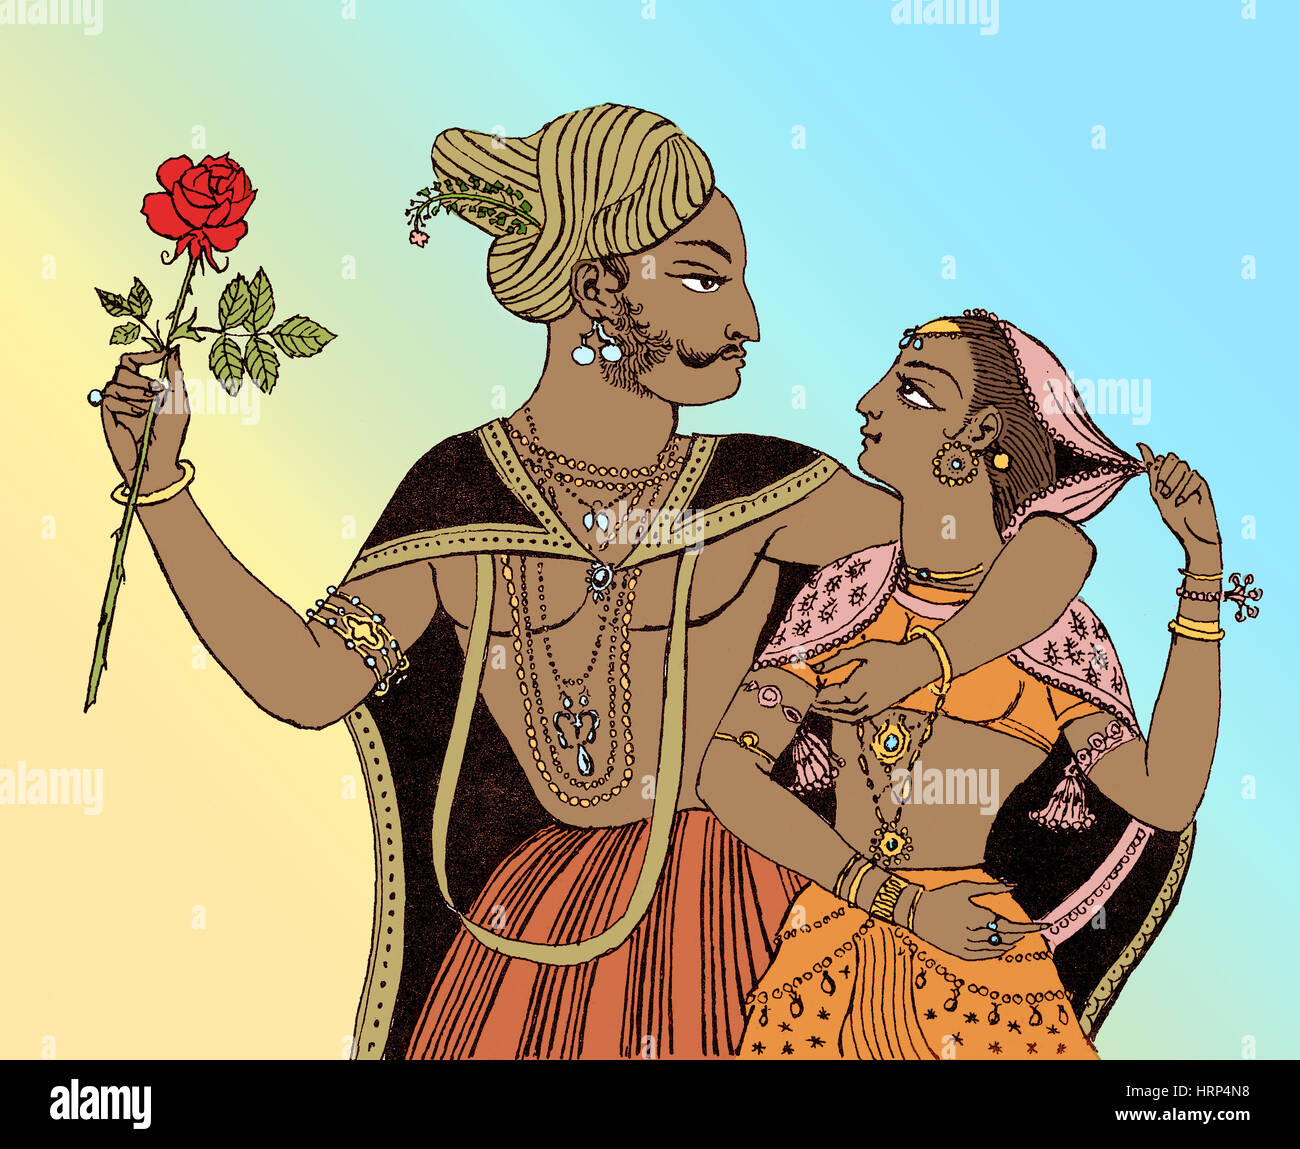 Discovery of Rose Oil, 1582 - Stock Image